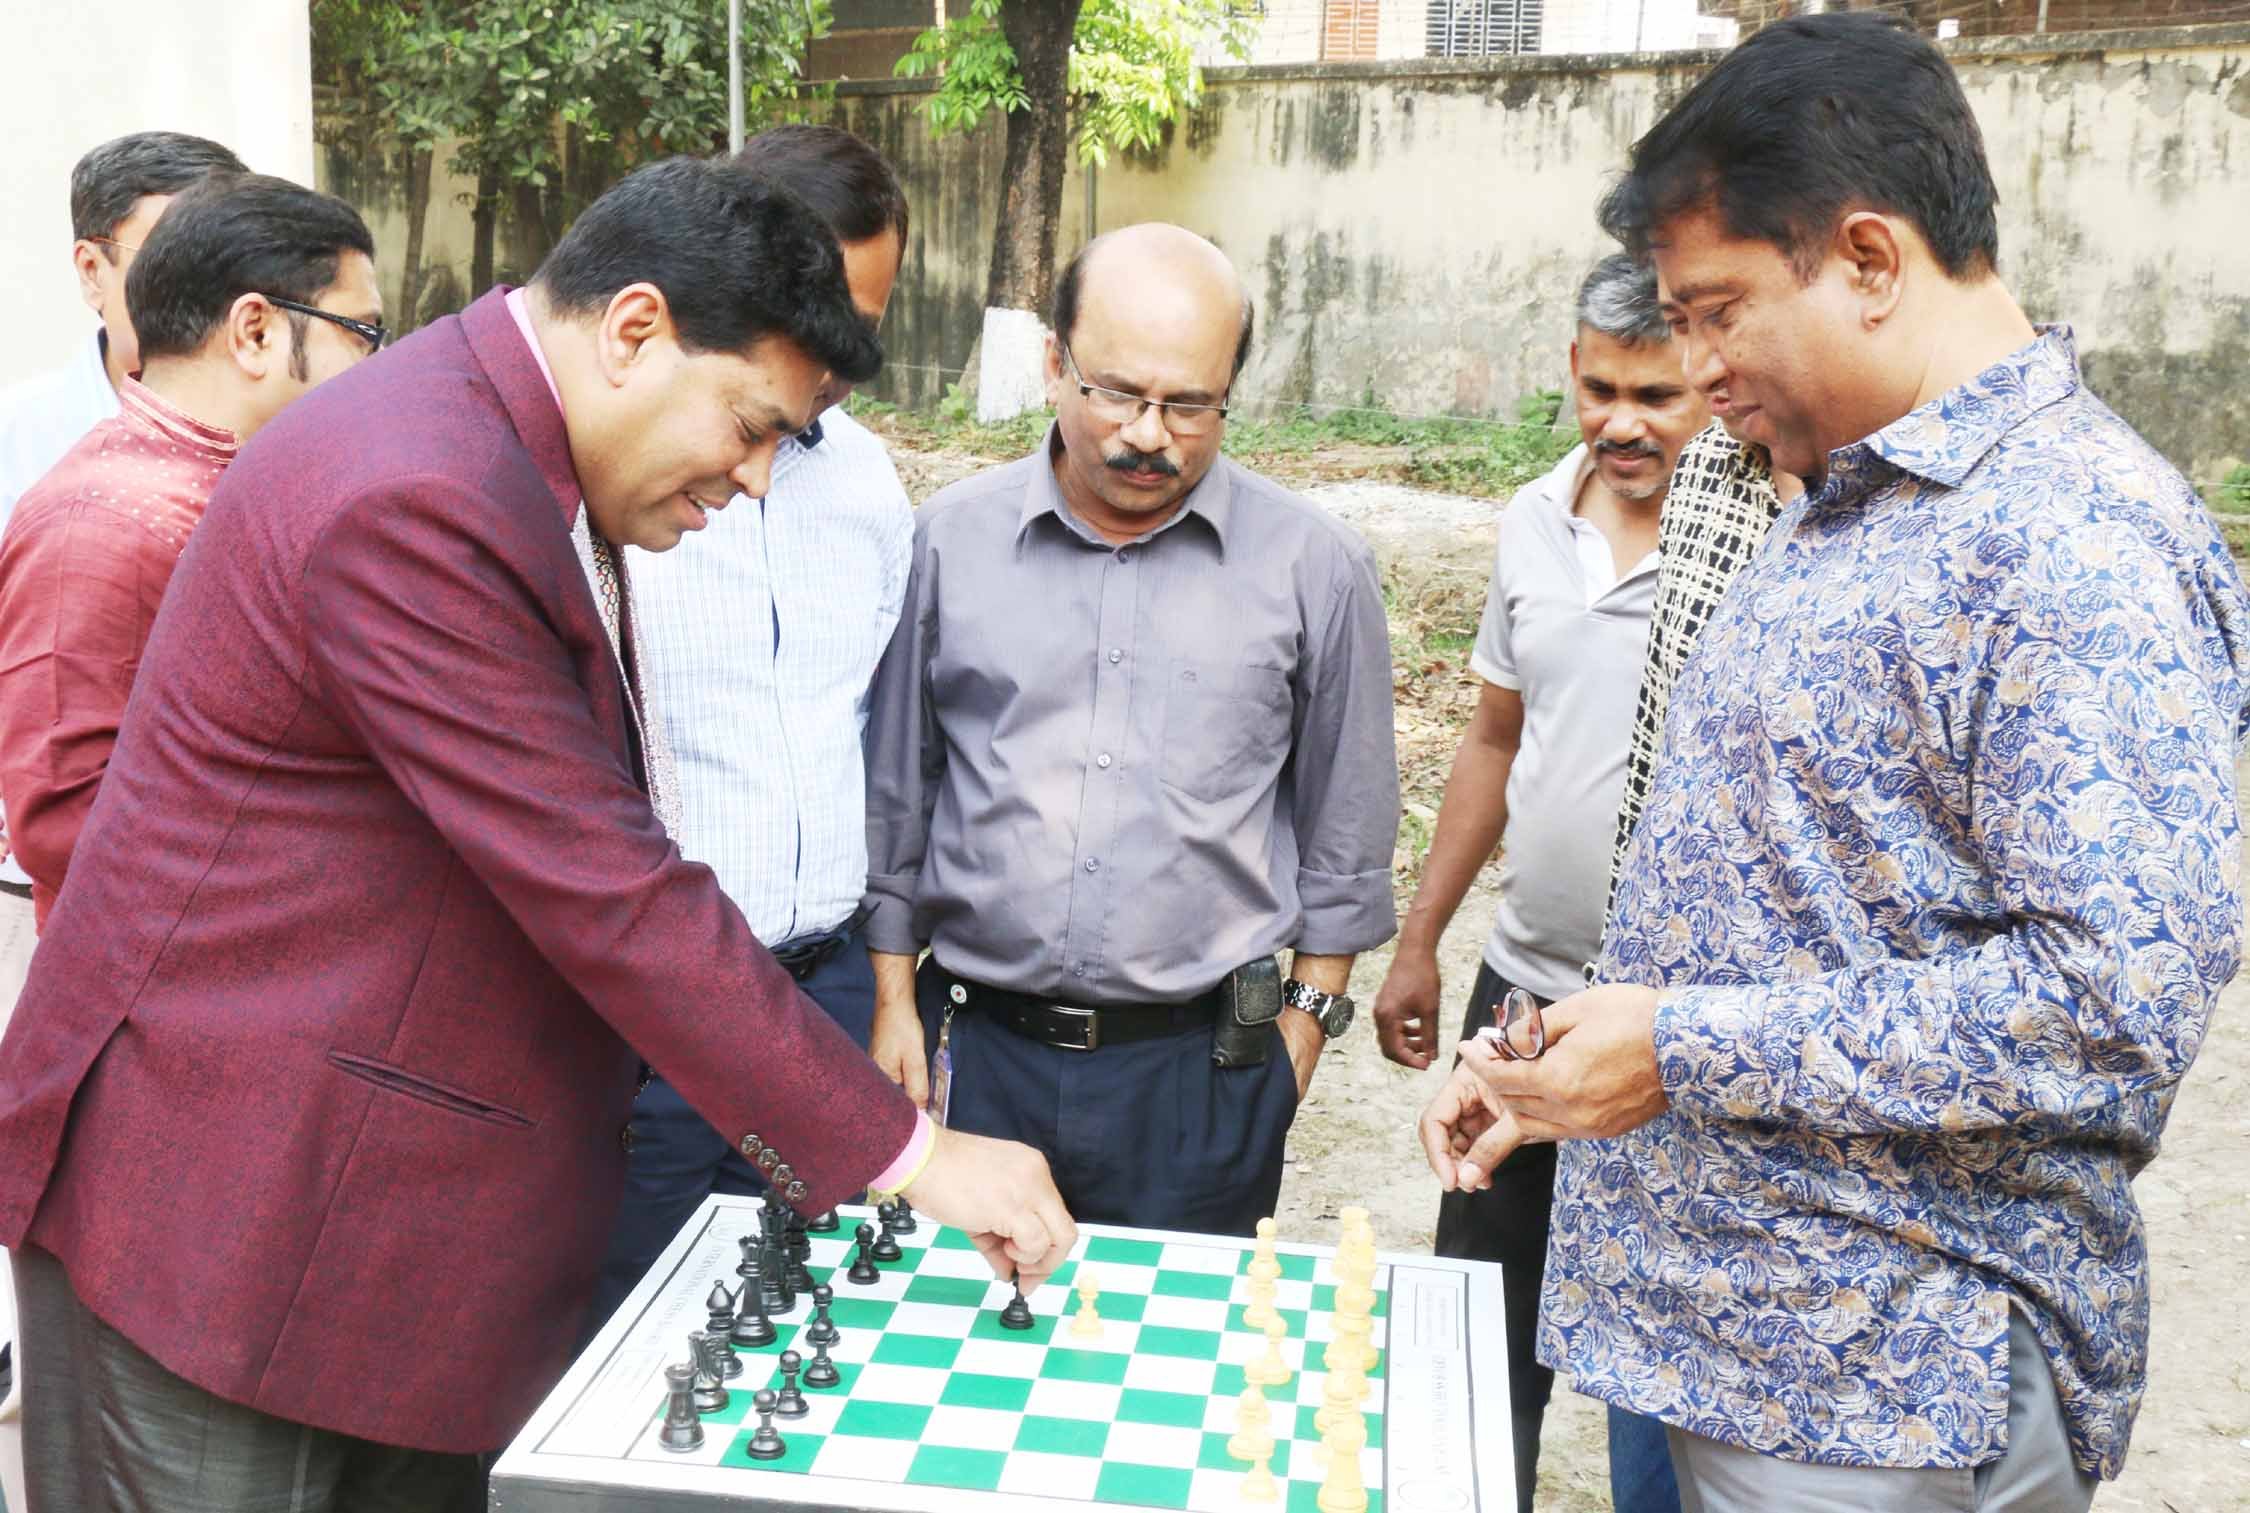 Operative Director (Head of Games &Sports) of Walton Group FM Iqbal Bin Anwar Dawn formally opens the Chess Competition of Walton-BTV Officers Club Sports Festival as the special guest at the premises of Bangladesh Television (BTV) in the city's Rampura on Saturday. Director General of BTV SM Harun-ur-Rashid was present at the time as the chief guest.